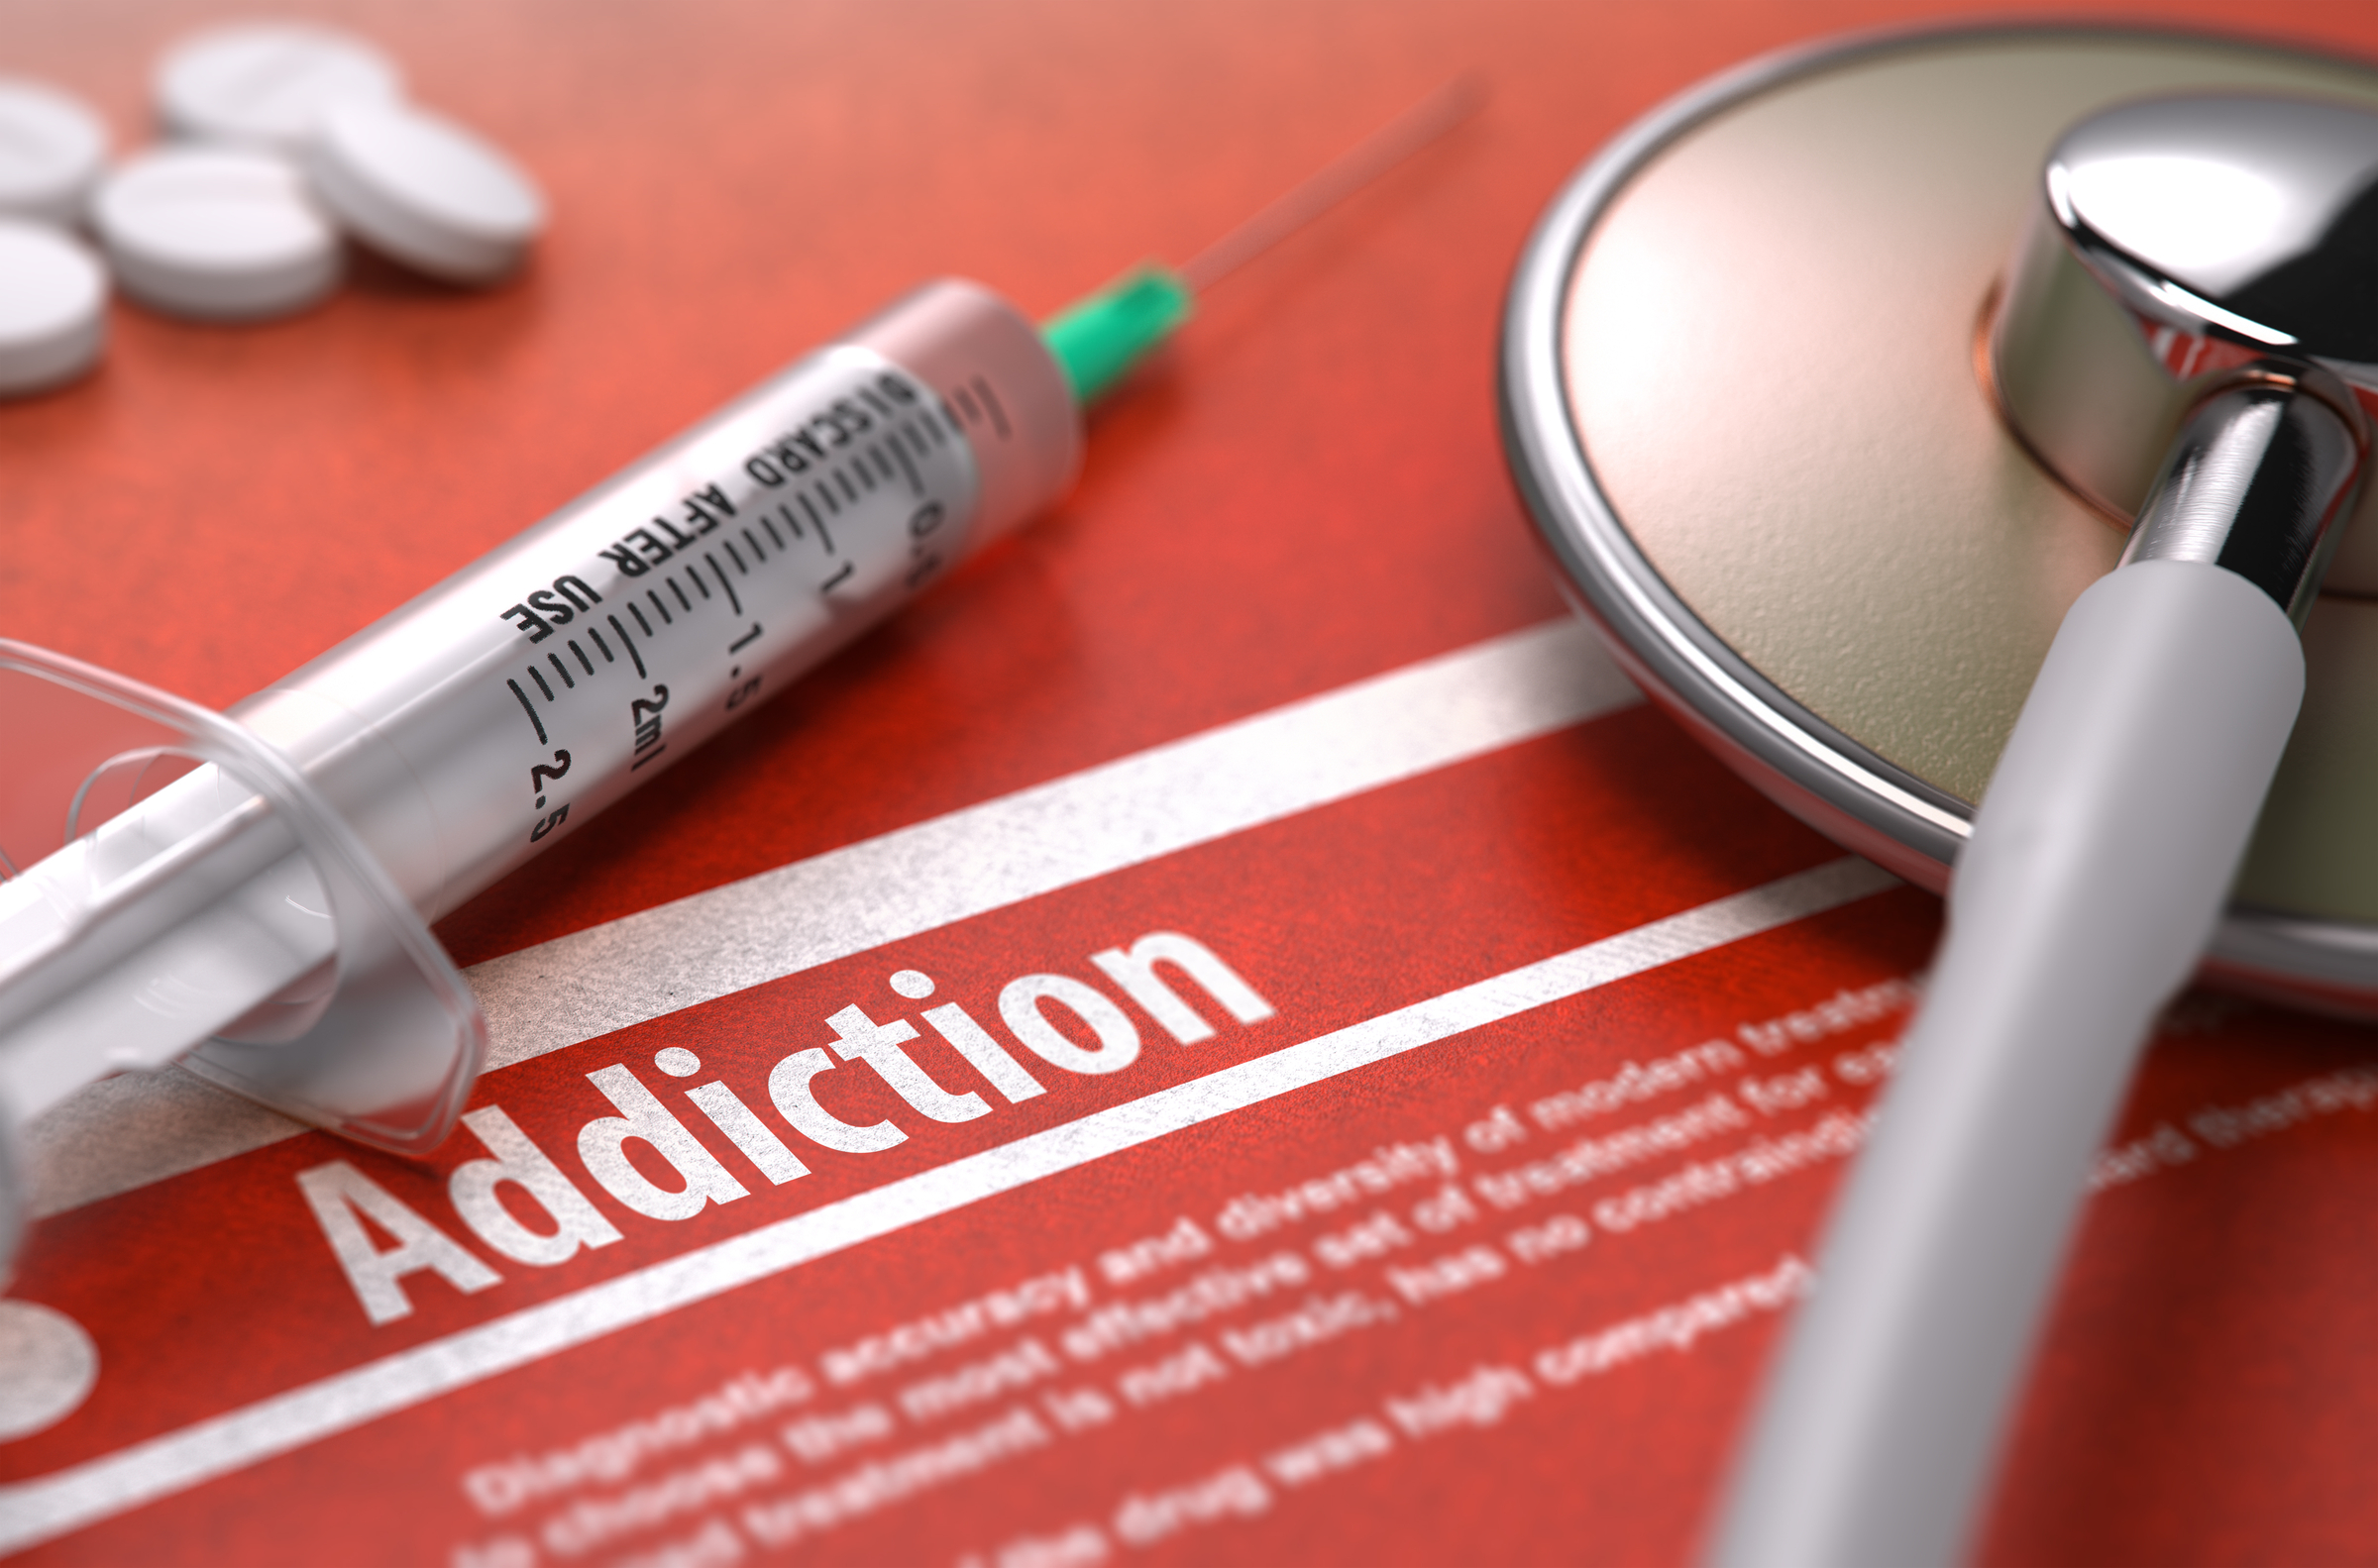 Pay Per Call Google Advertising Rehab Centers Addiction Marketing Recovery Pay Per Call Rehab Lead Generation Marketing Drug Addiction Rehab